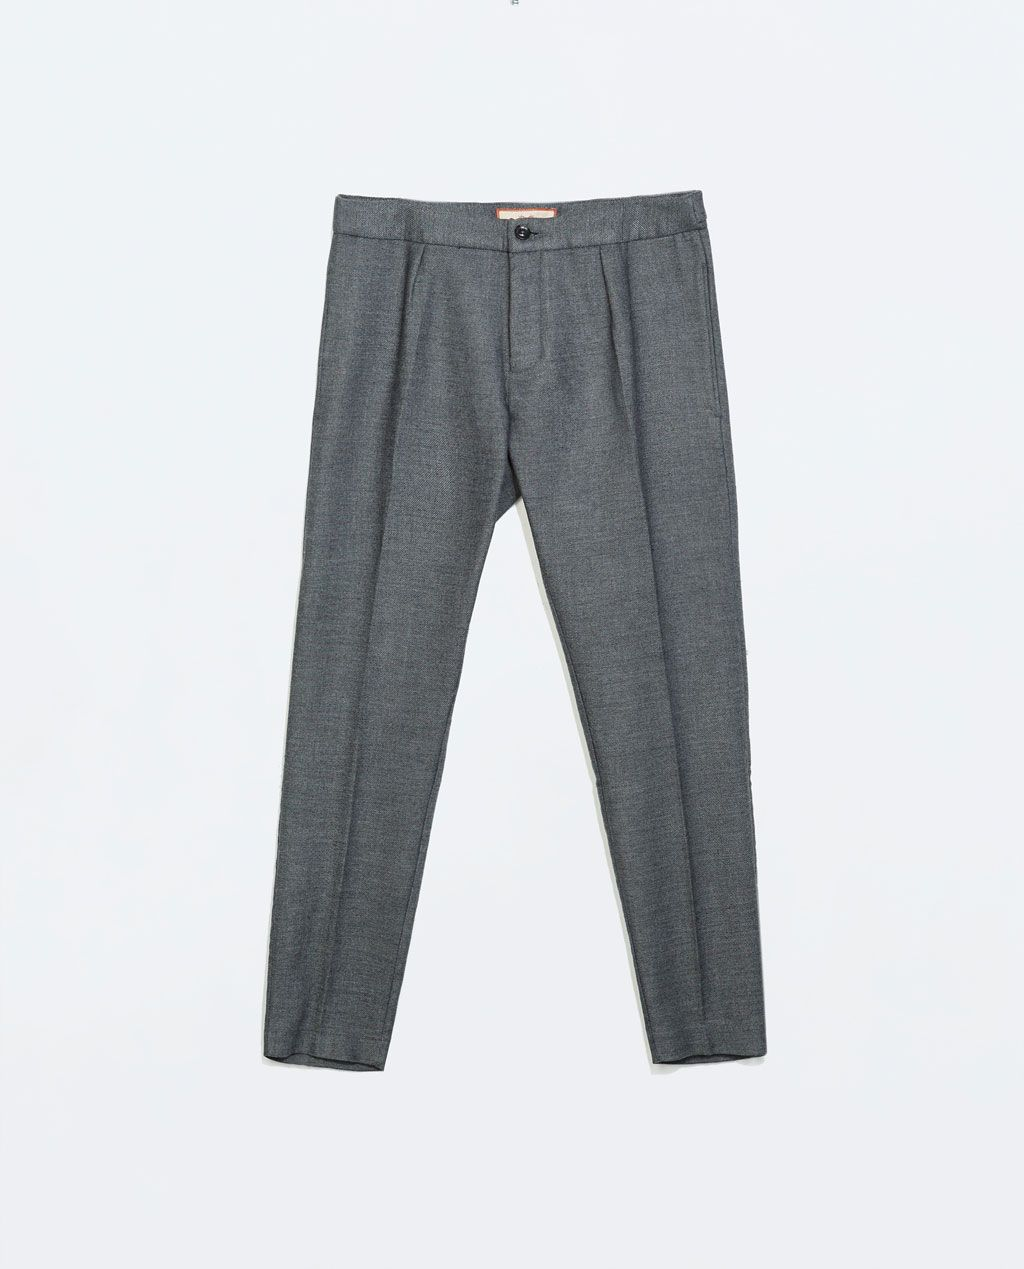 ZARA - NEW THIS WEEK - THICK GREY TROUSERS